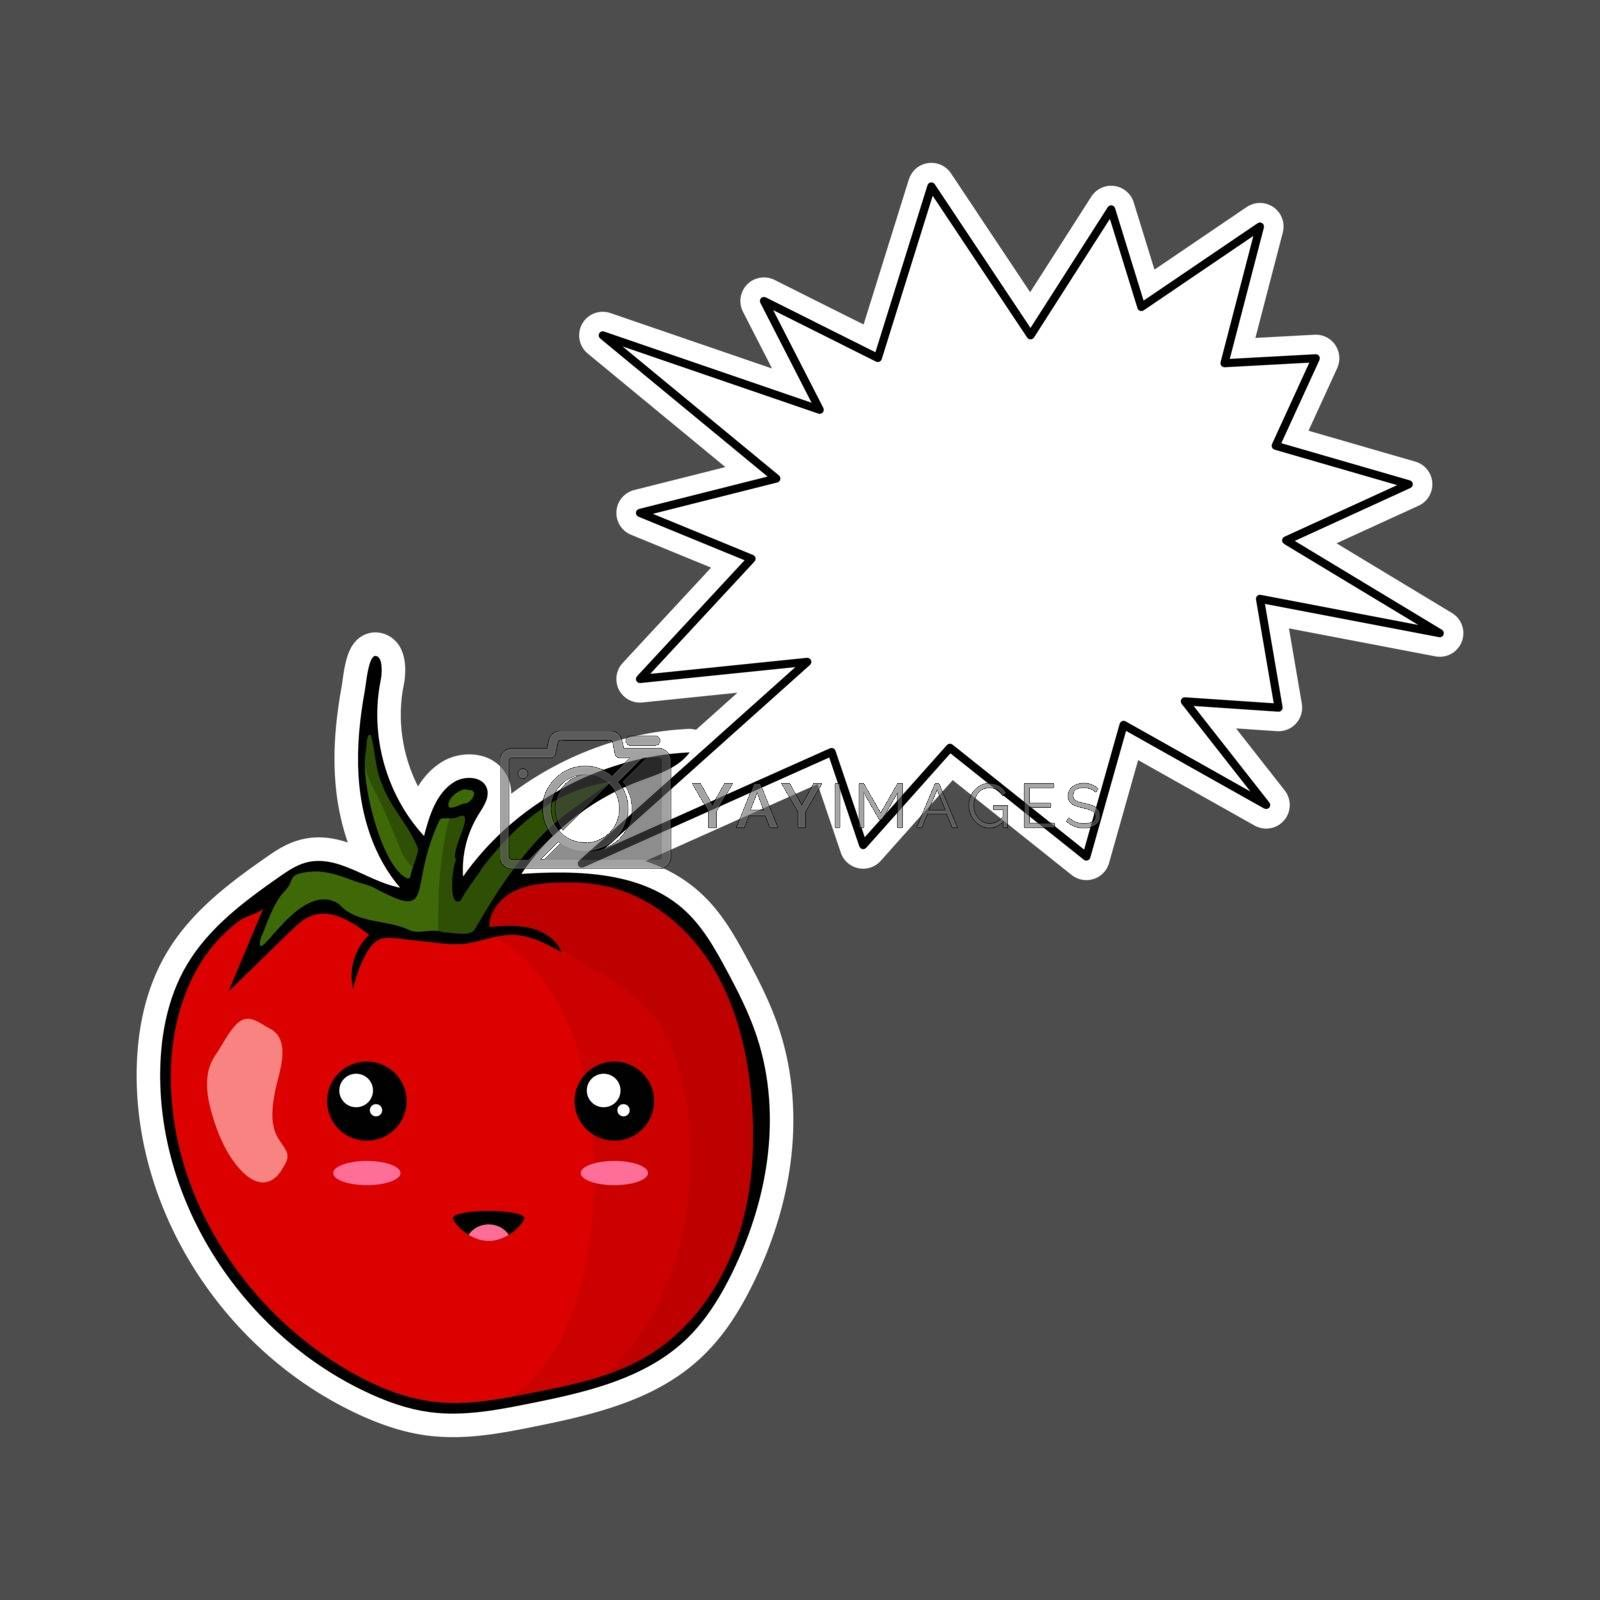 Kawaii sticker colorful cartoon tomato with thought bubble. Vector illustration isolated on dark background.